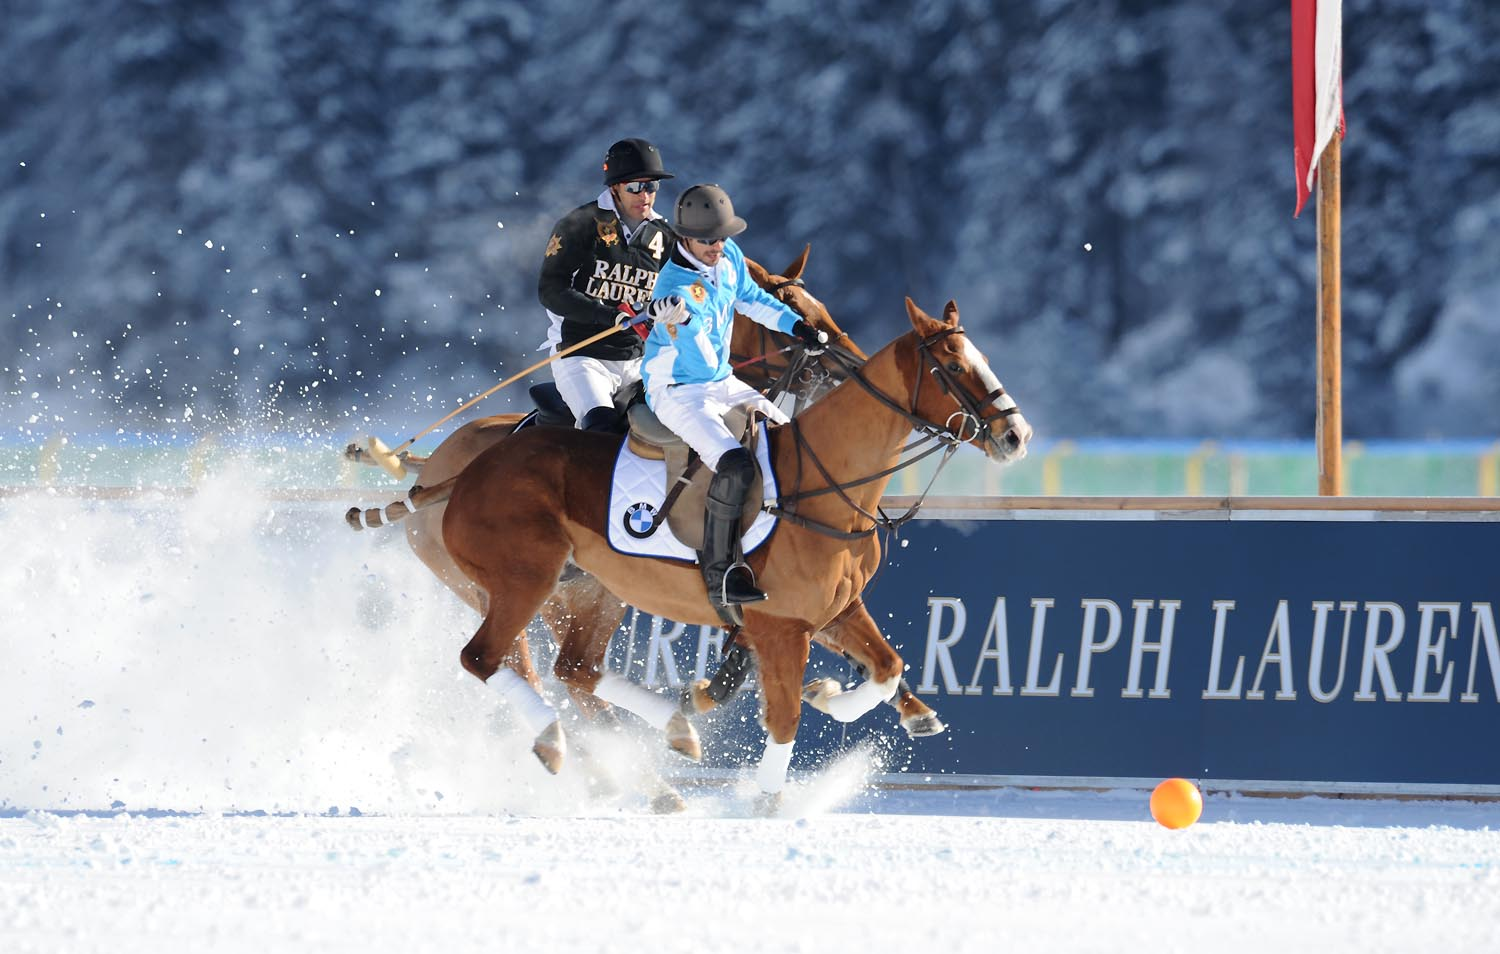 St. Moritz Polo World Cup on Snow from 24 to 27 January 2013